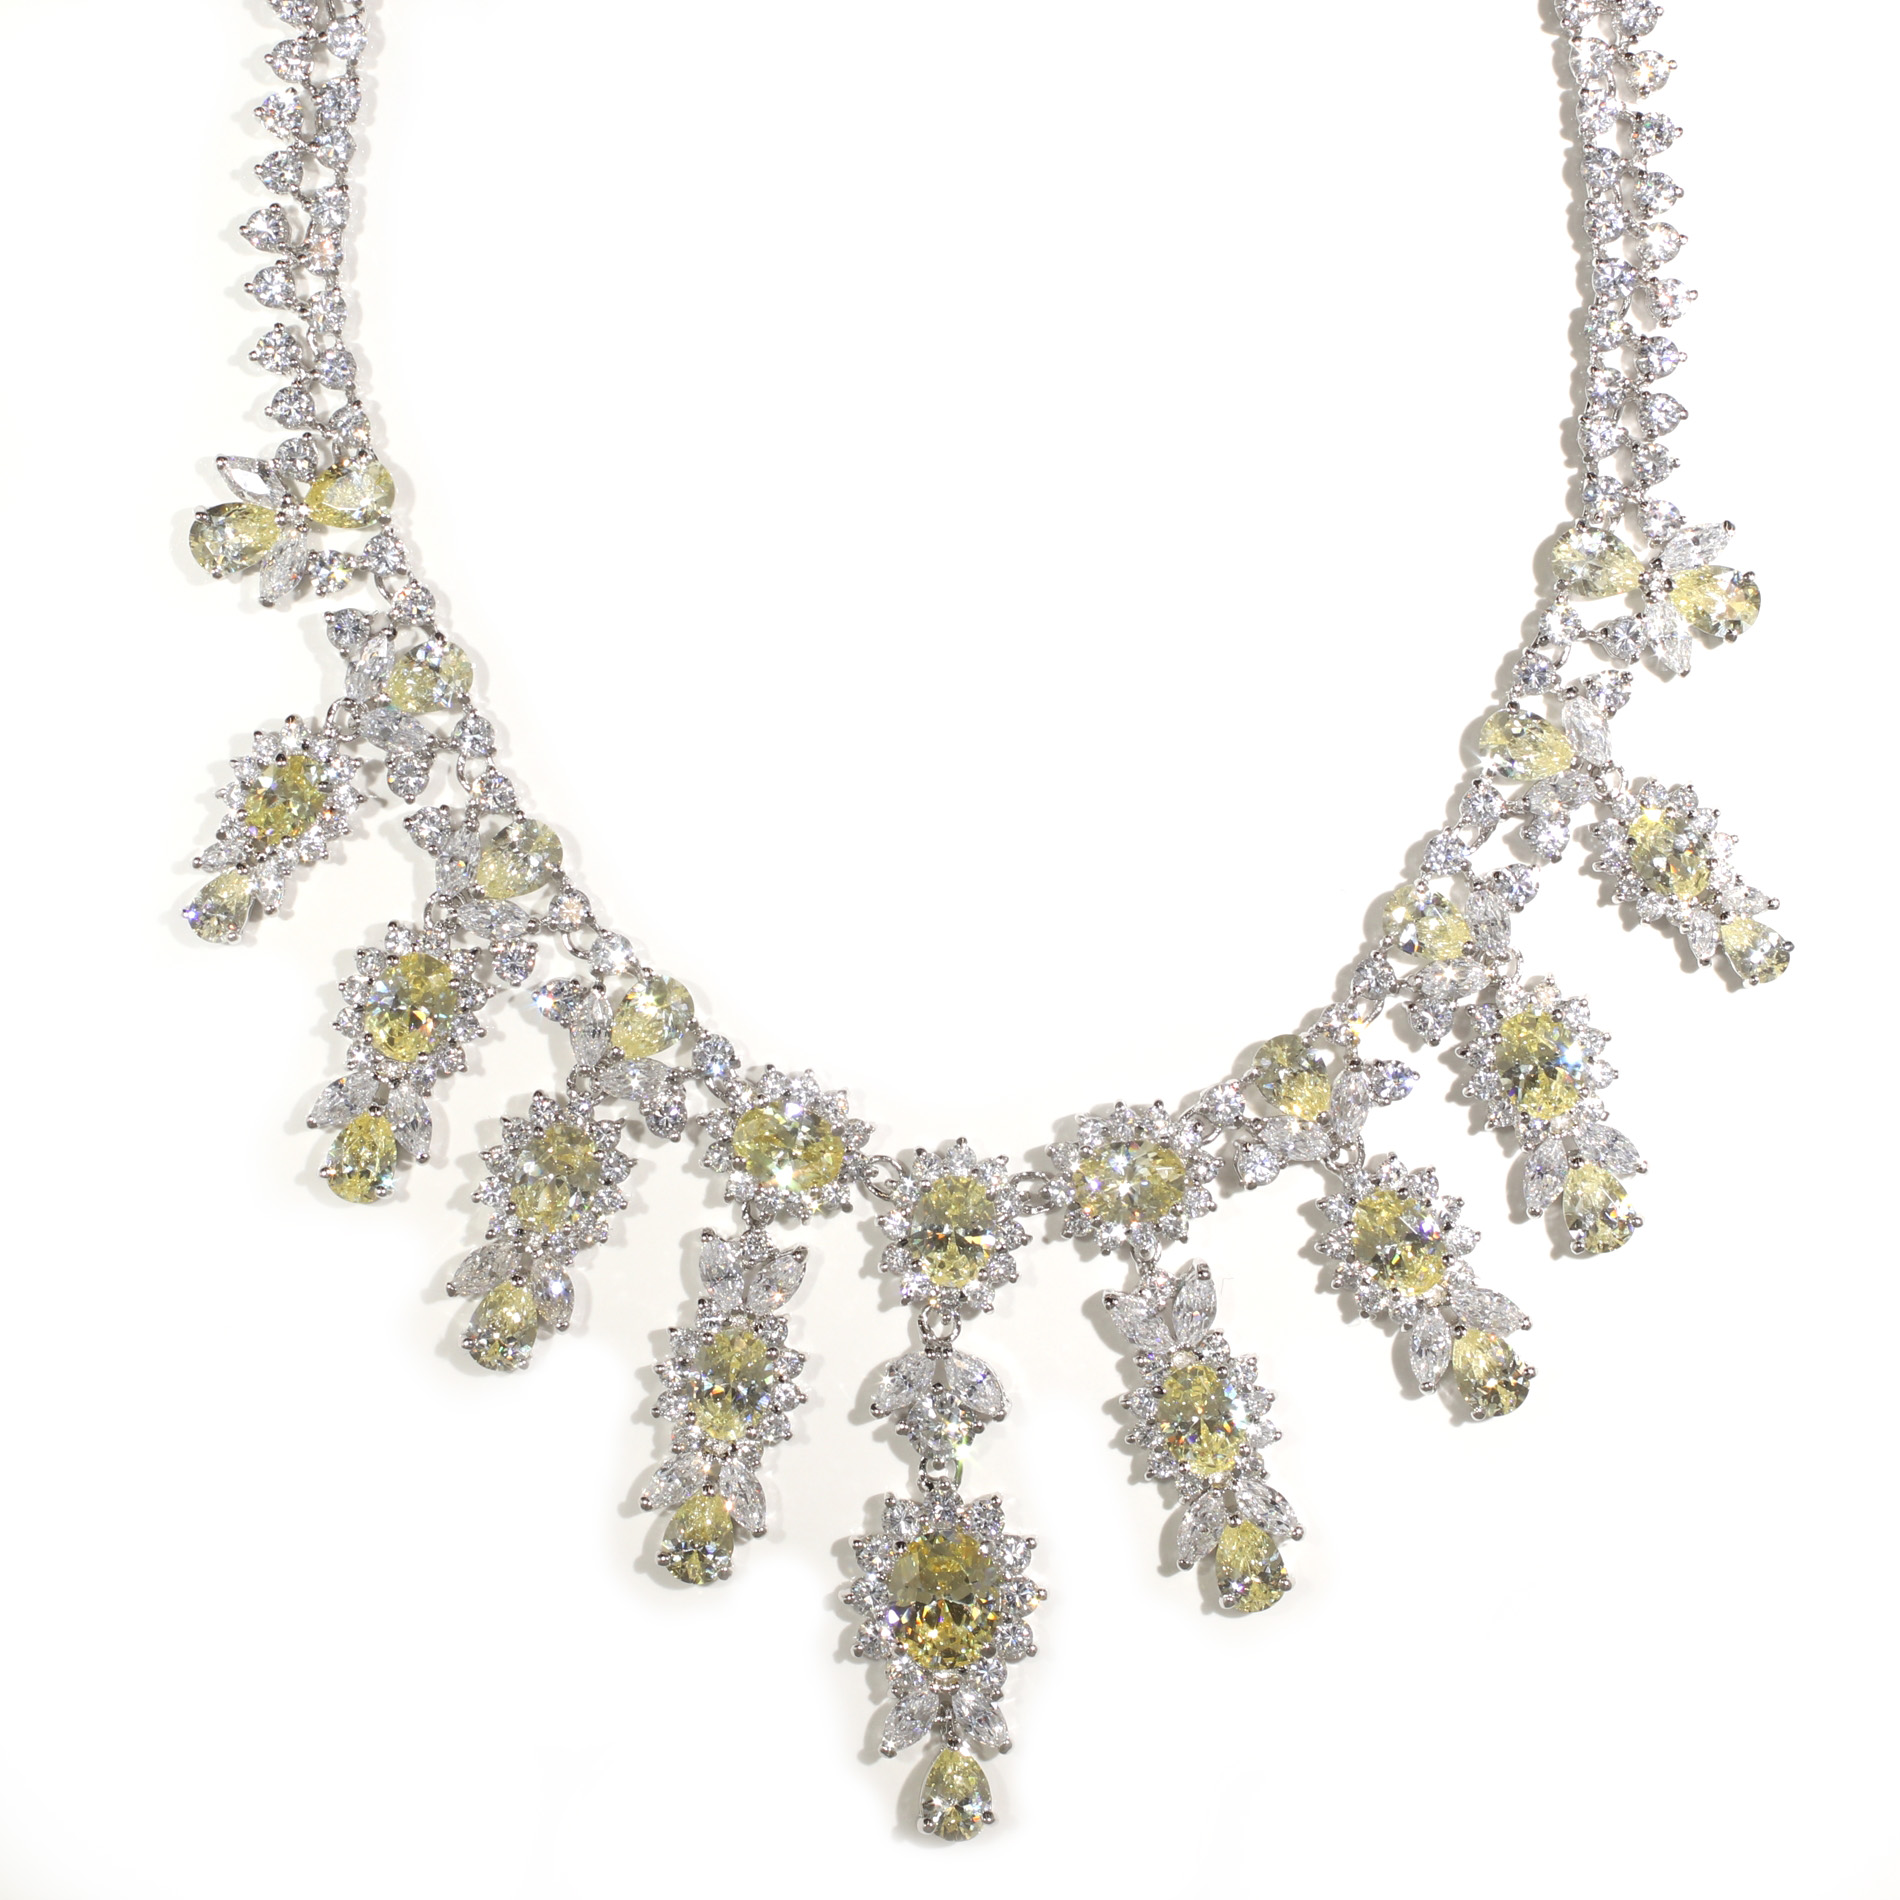 Canary Chandelier Necklace